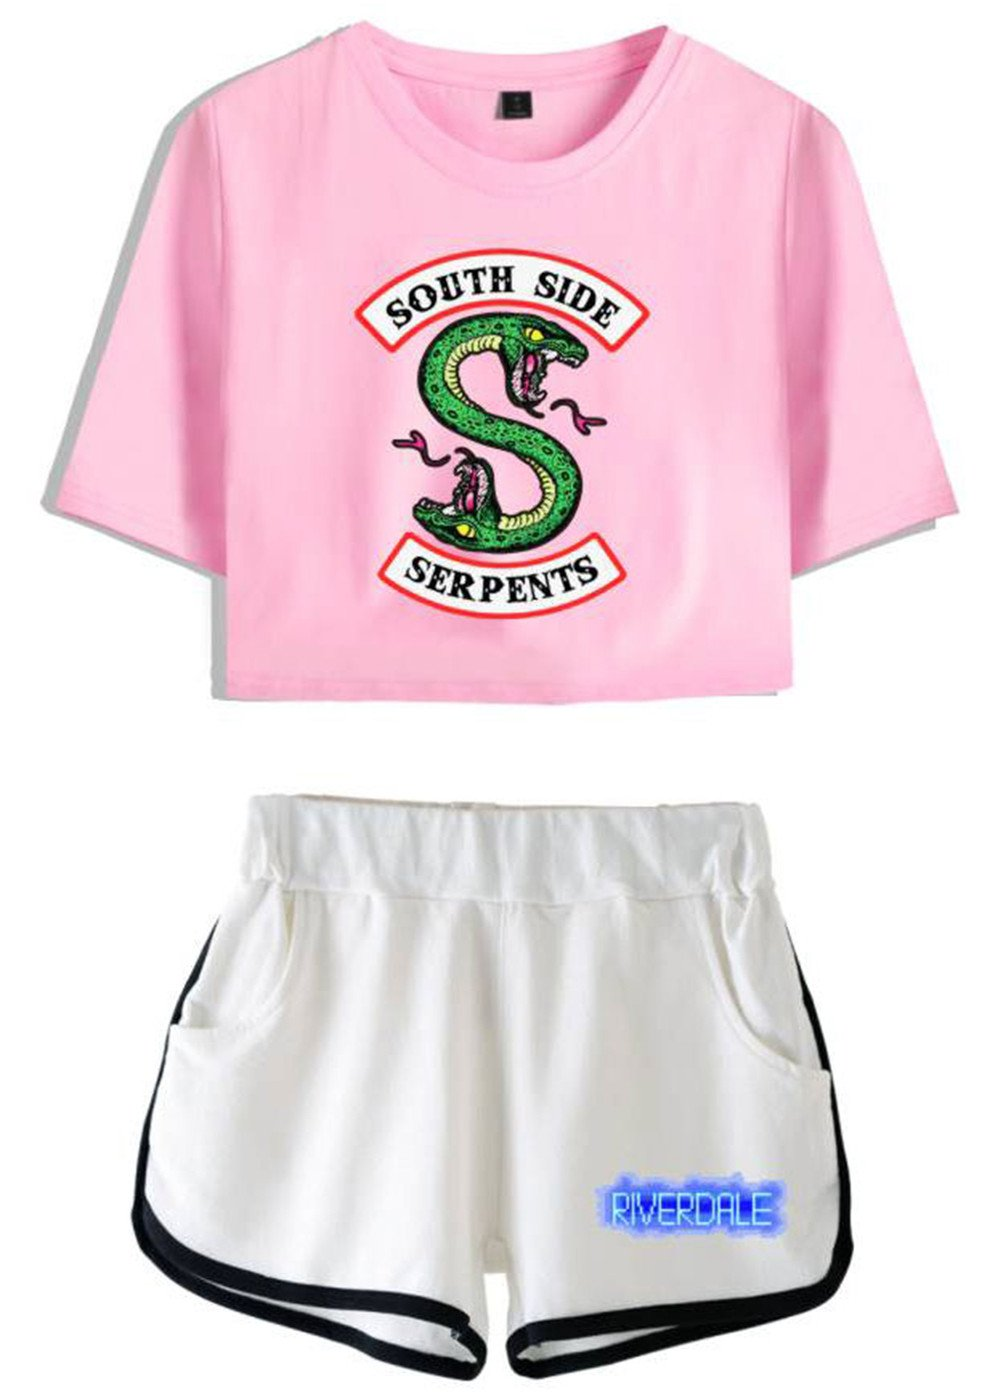 SERAPHY Riverdale Clothing Crop Top T-Shirt and Shorts Suit for Girls/Wowen 5760 Pink-Whites